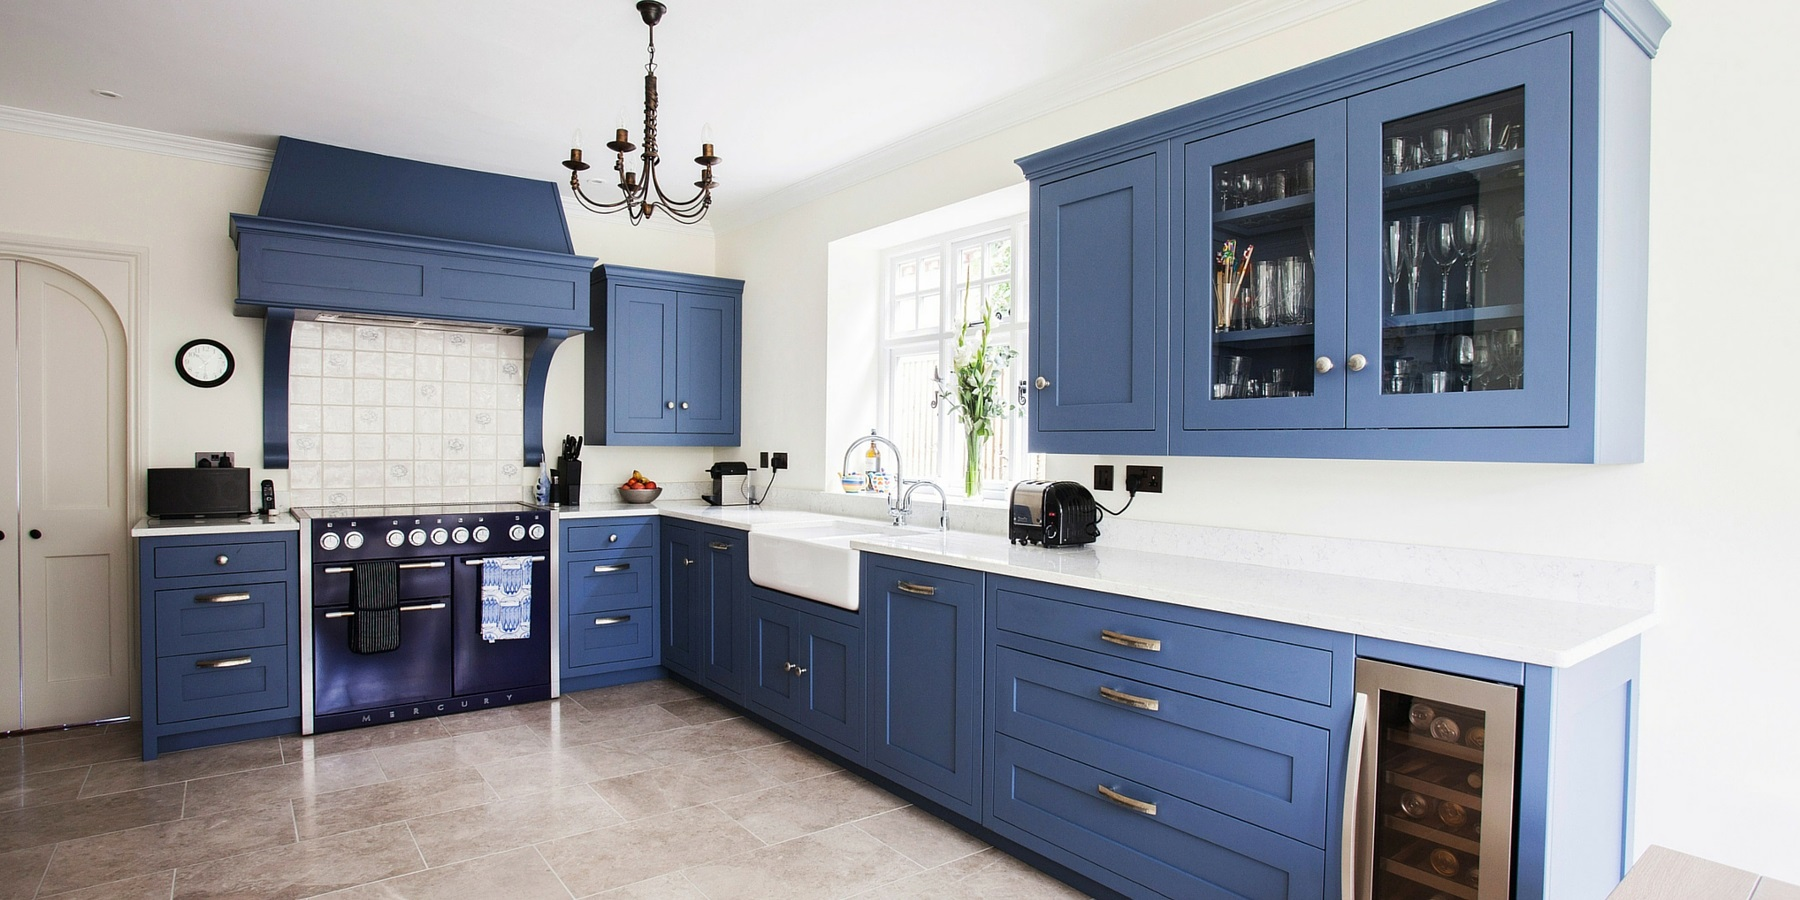 Using colour in kitchen design Kitchen design of sevenoaks